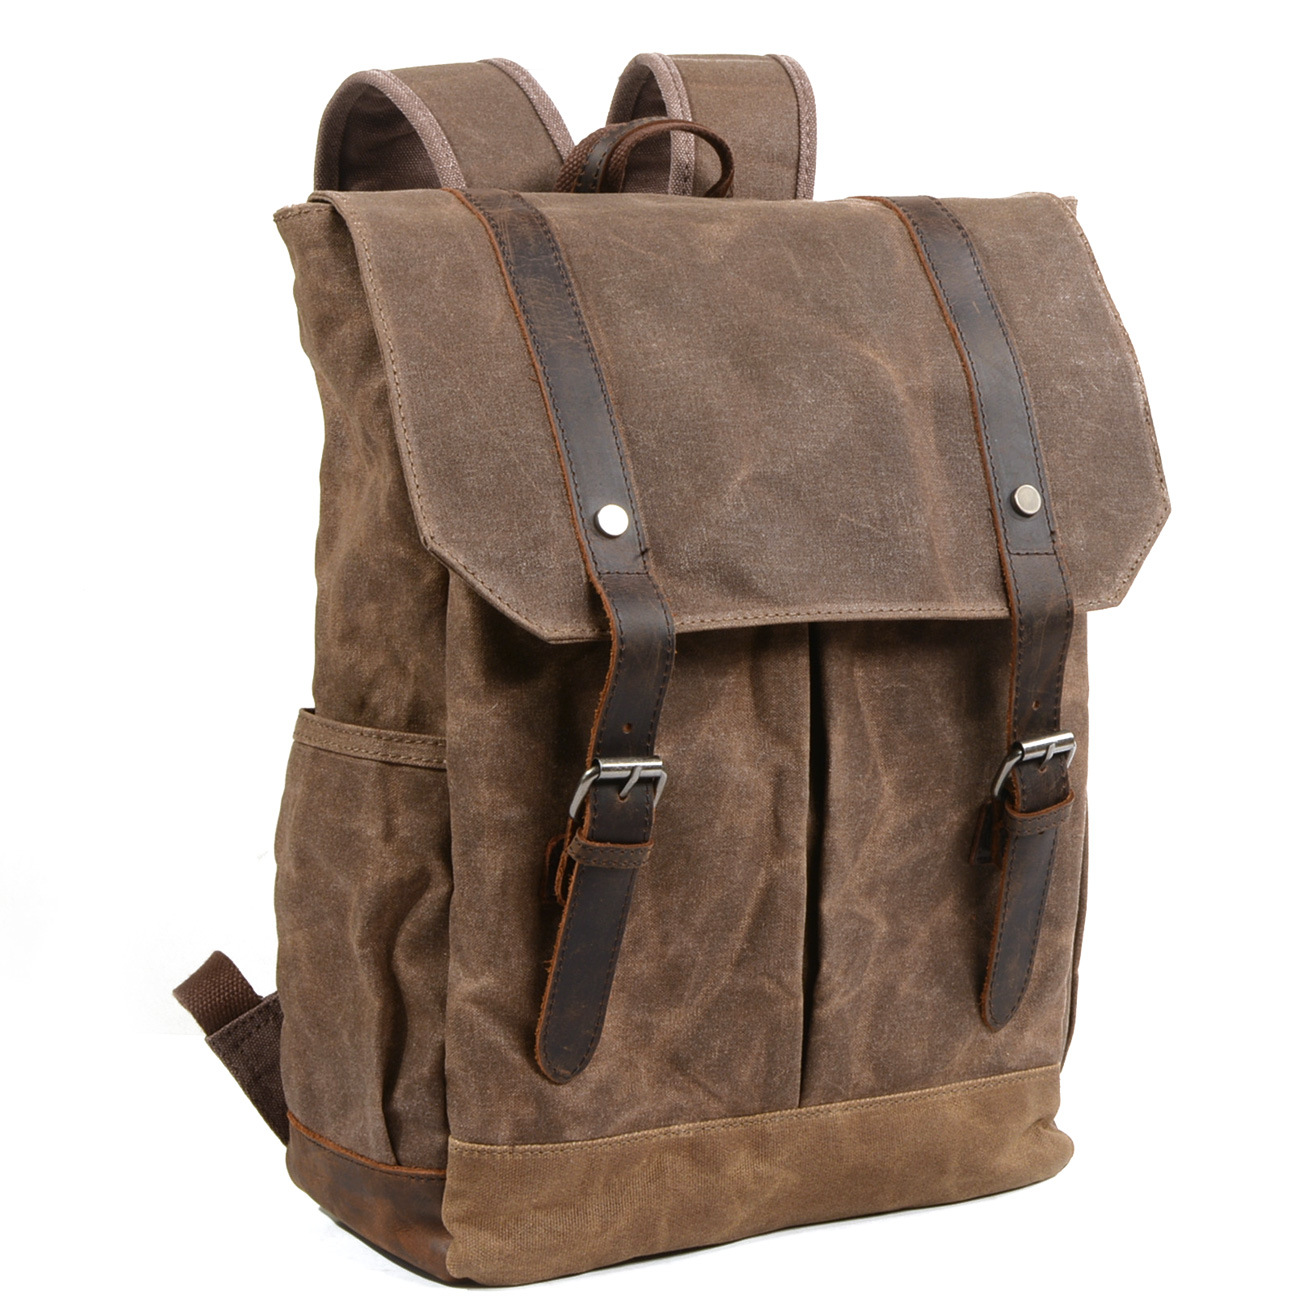 Man's Waxed Canvas Harajuku Backpack waterproof Travel Schoolbag Male Women Large Capacity Rucksack Shoulder Bag Mochila Escolar man s canvas backpack travel schoolbag male backpack men middle capacity rucksack shoulder school bag mochila escolar